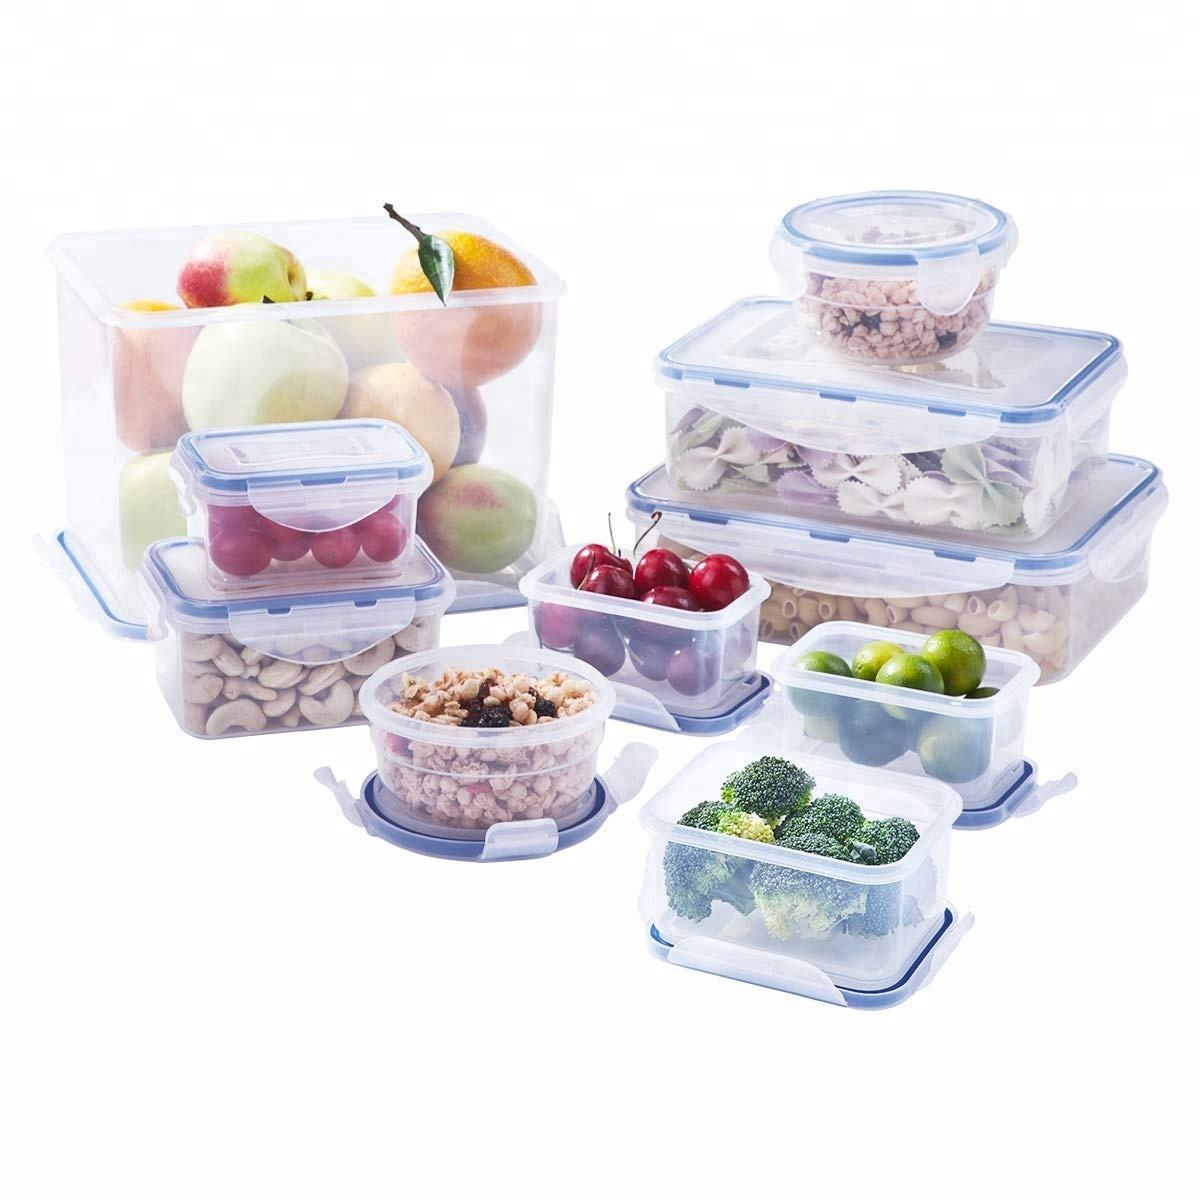 20 Piece Promotion Plastic Food Storage Container Gift Set